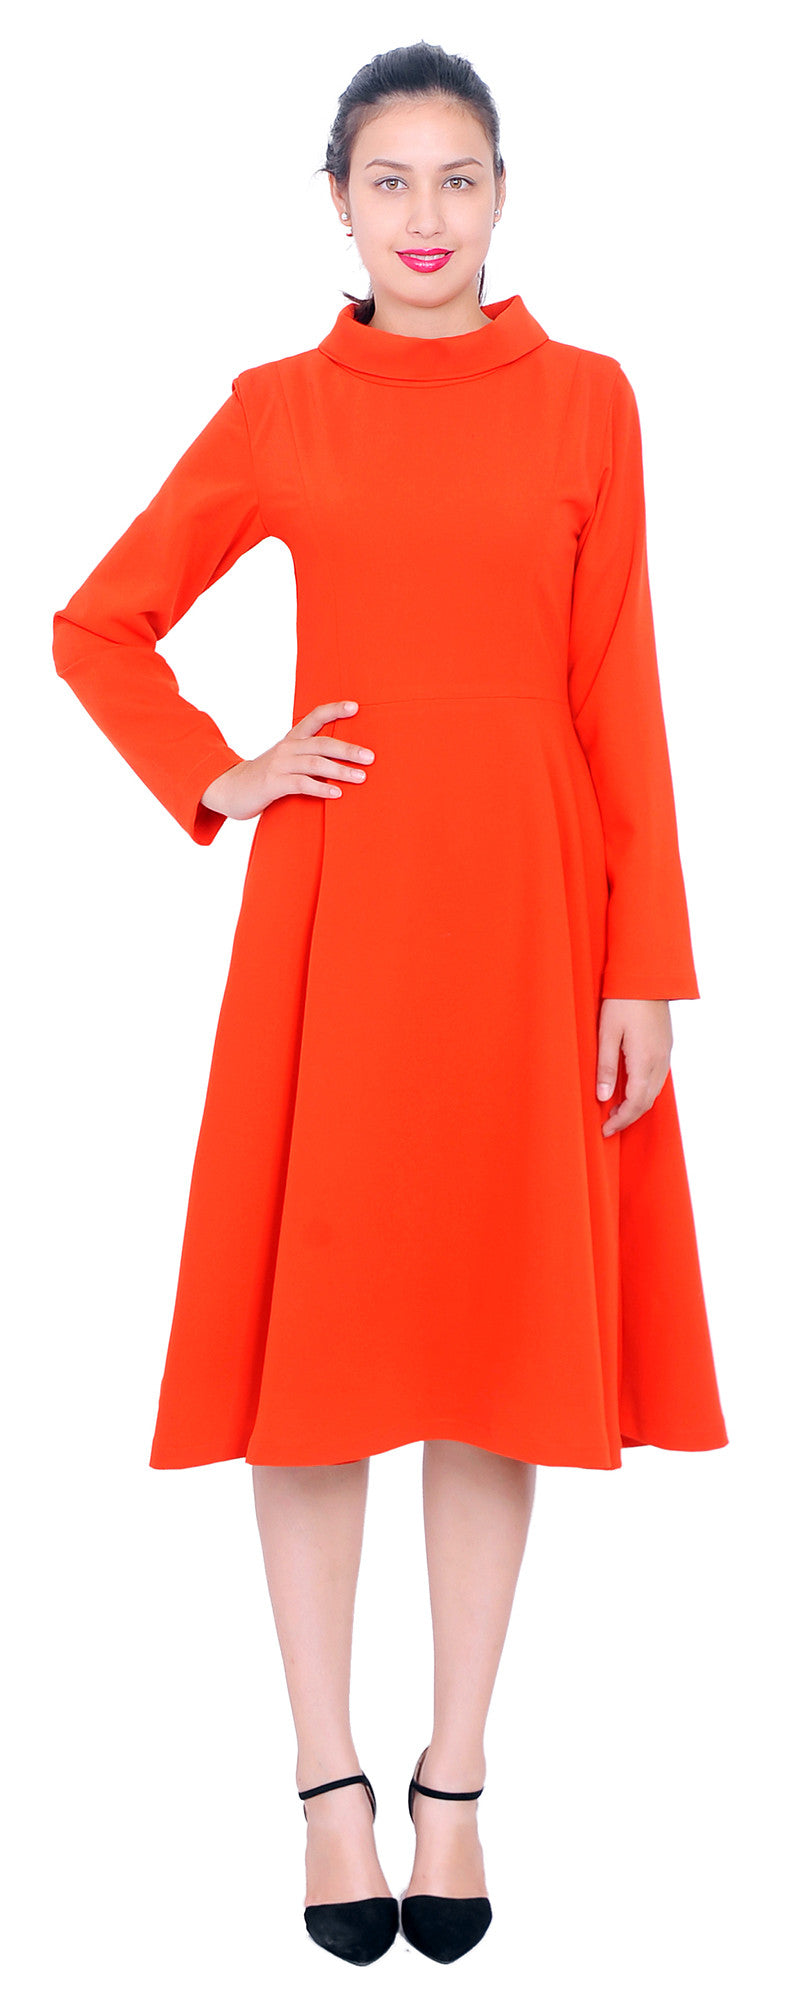 19a4fd357de Winter High Neck Long Sleeve A Line Flared Midi Dresses – Marycrafts